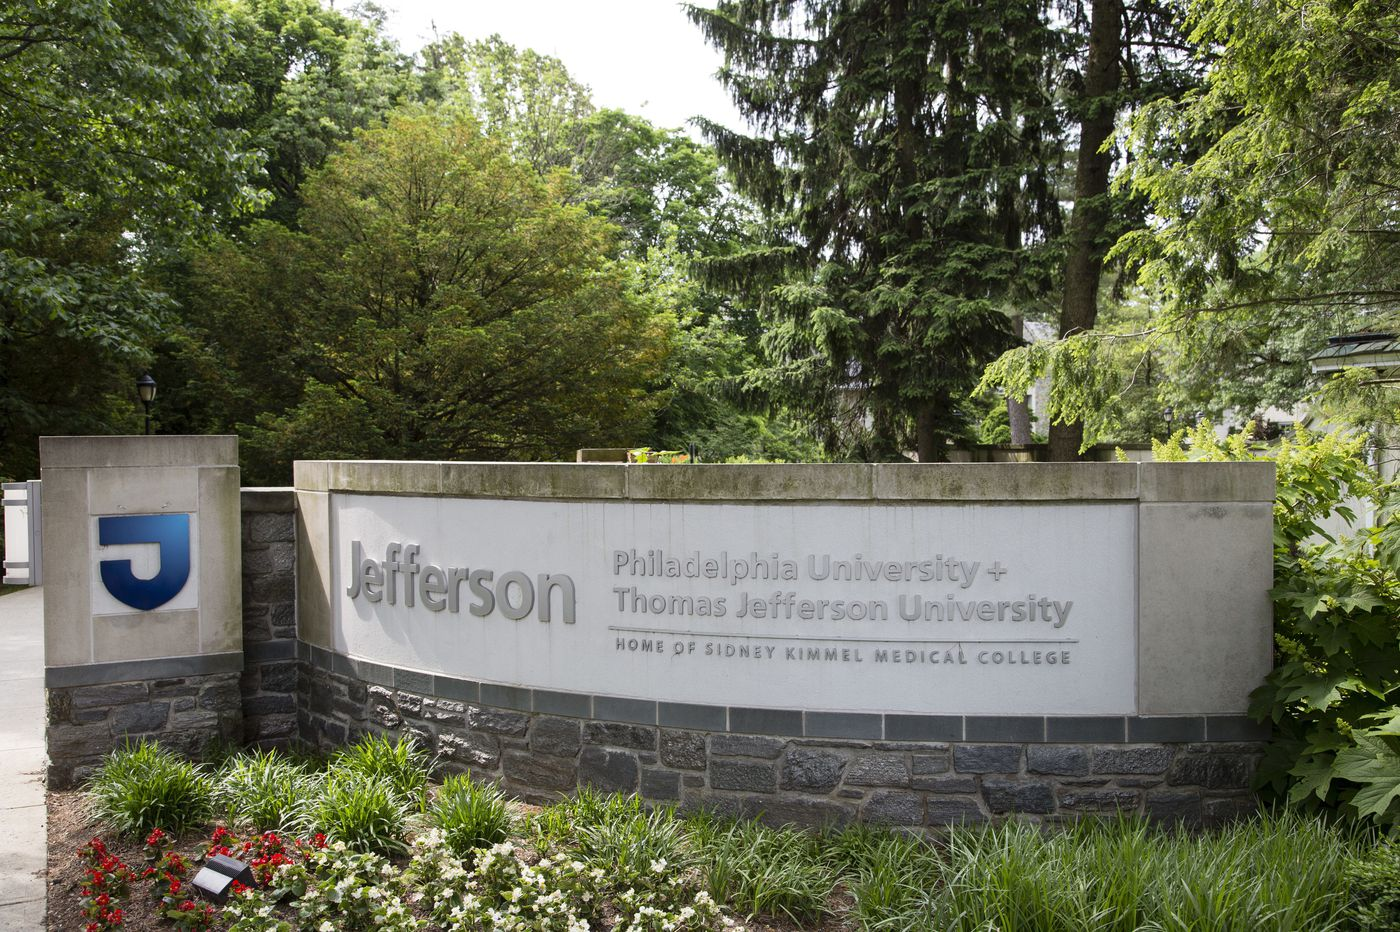 Jefferson's new deal with real estate investor could help pay for continued expansion